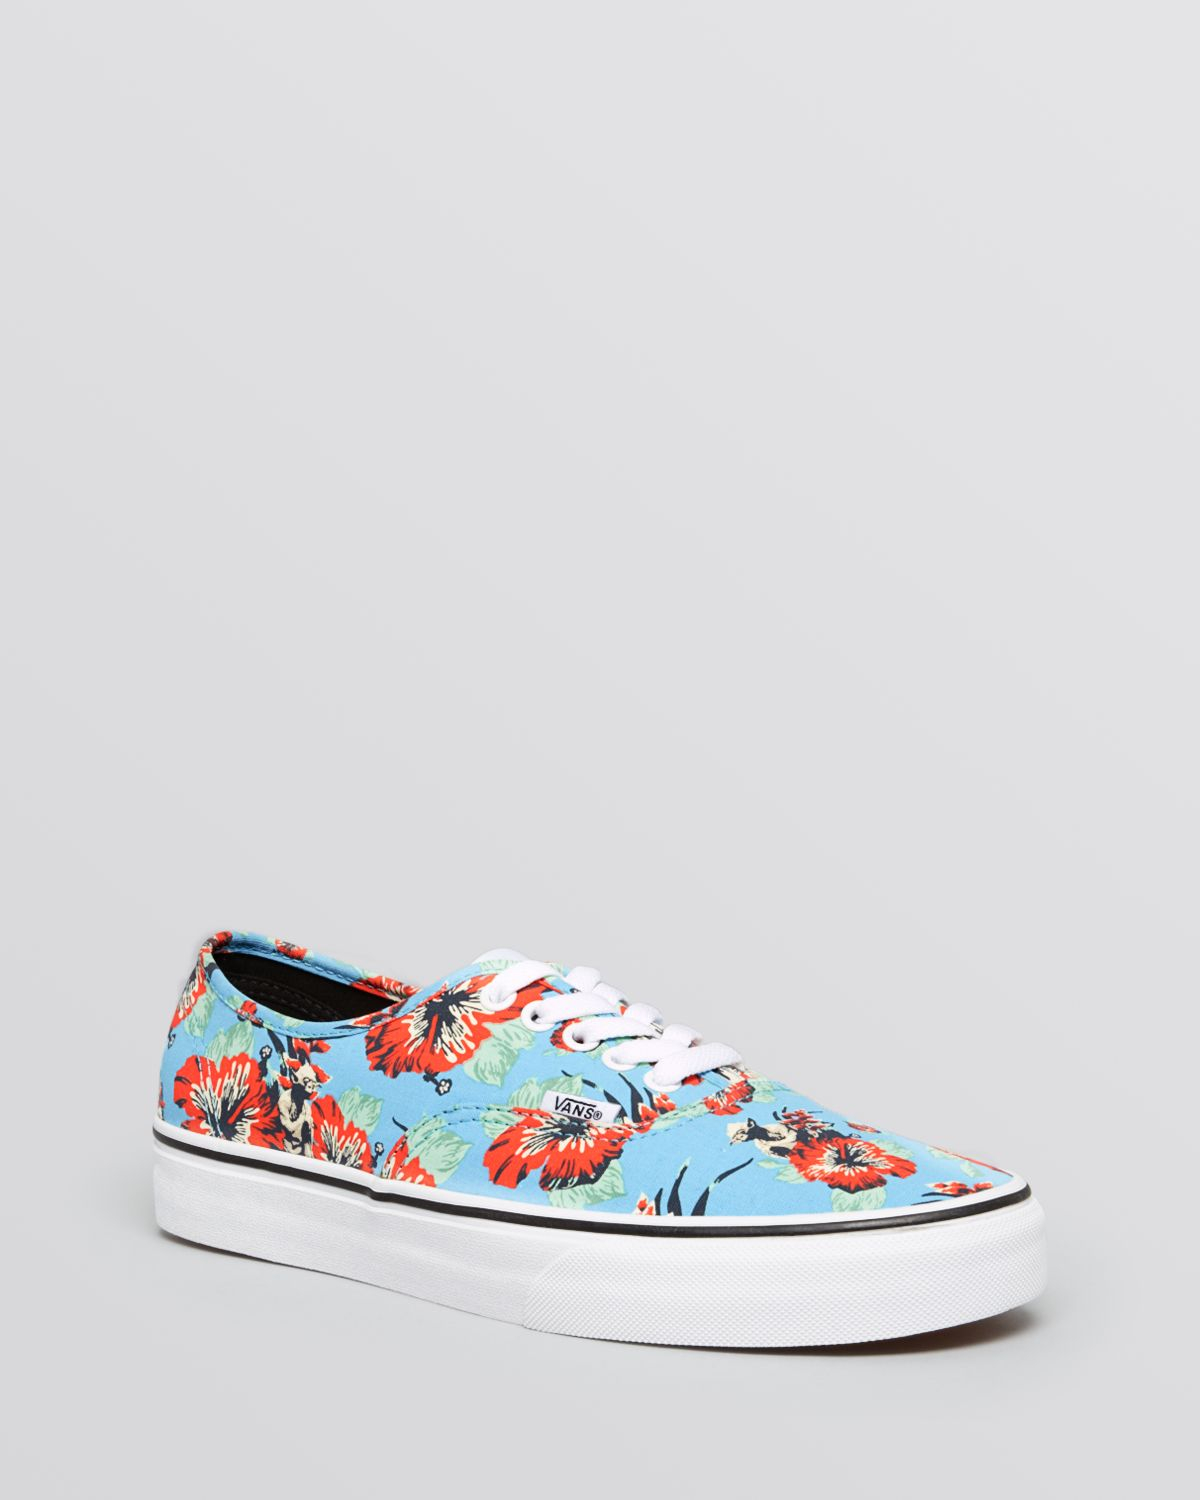 2a7c28a96794d7 Lyst - Vans Star Wars Authentic Yoda Aloha Sneakers in Blue for Men